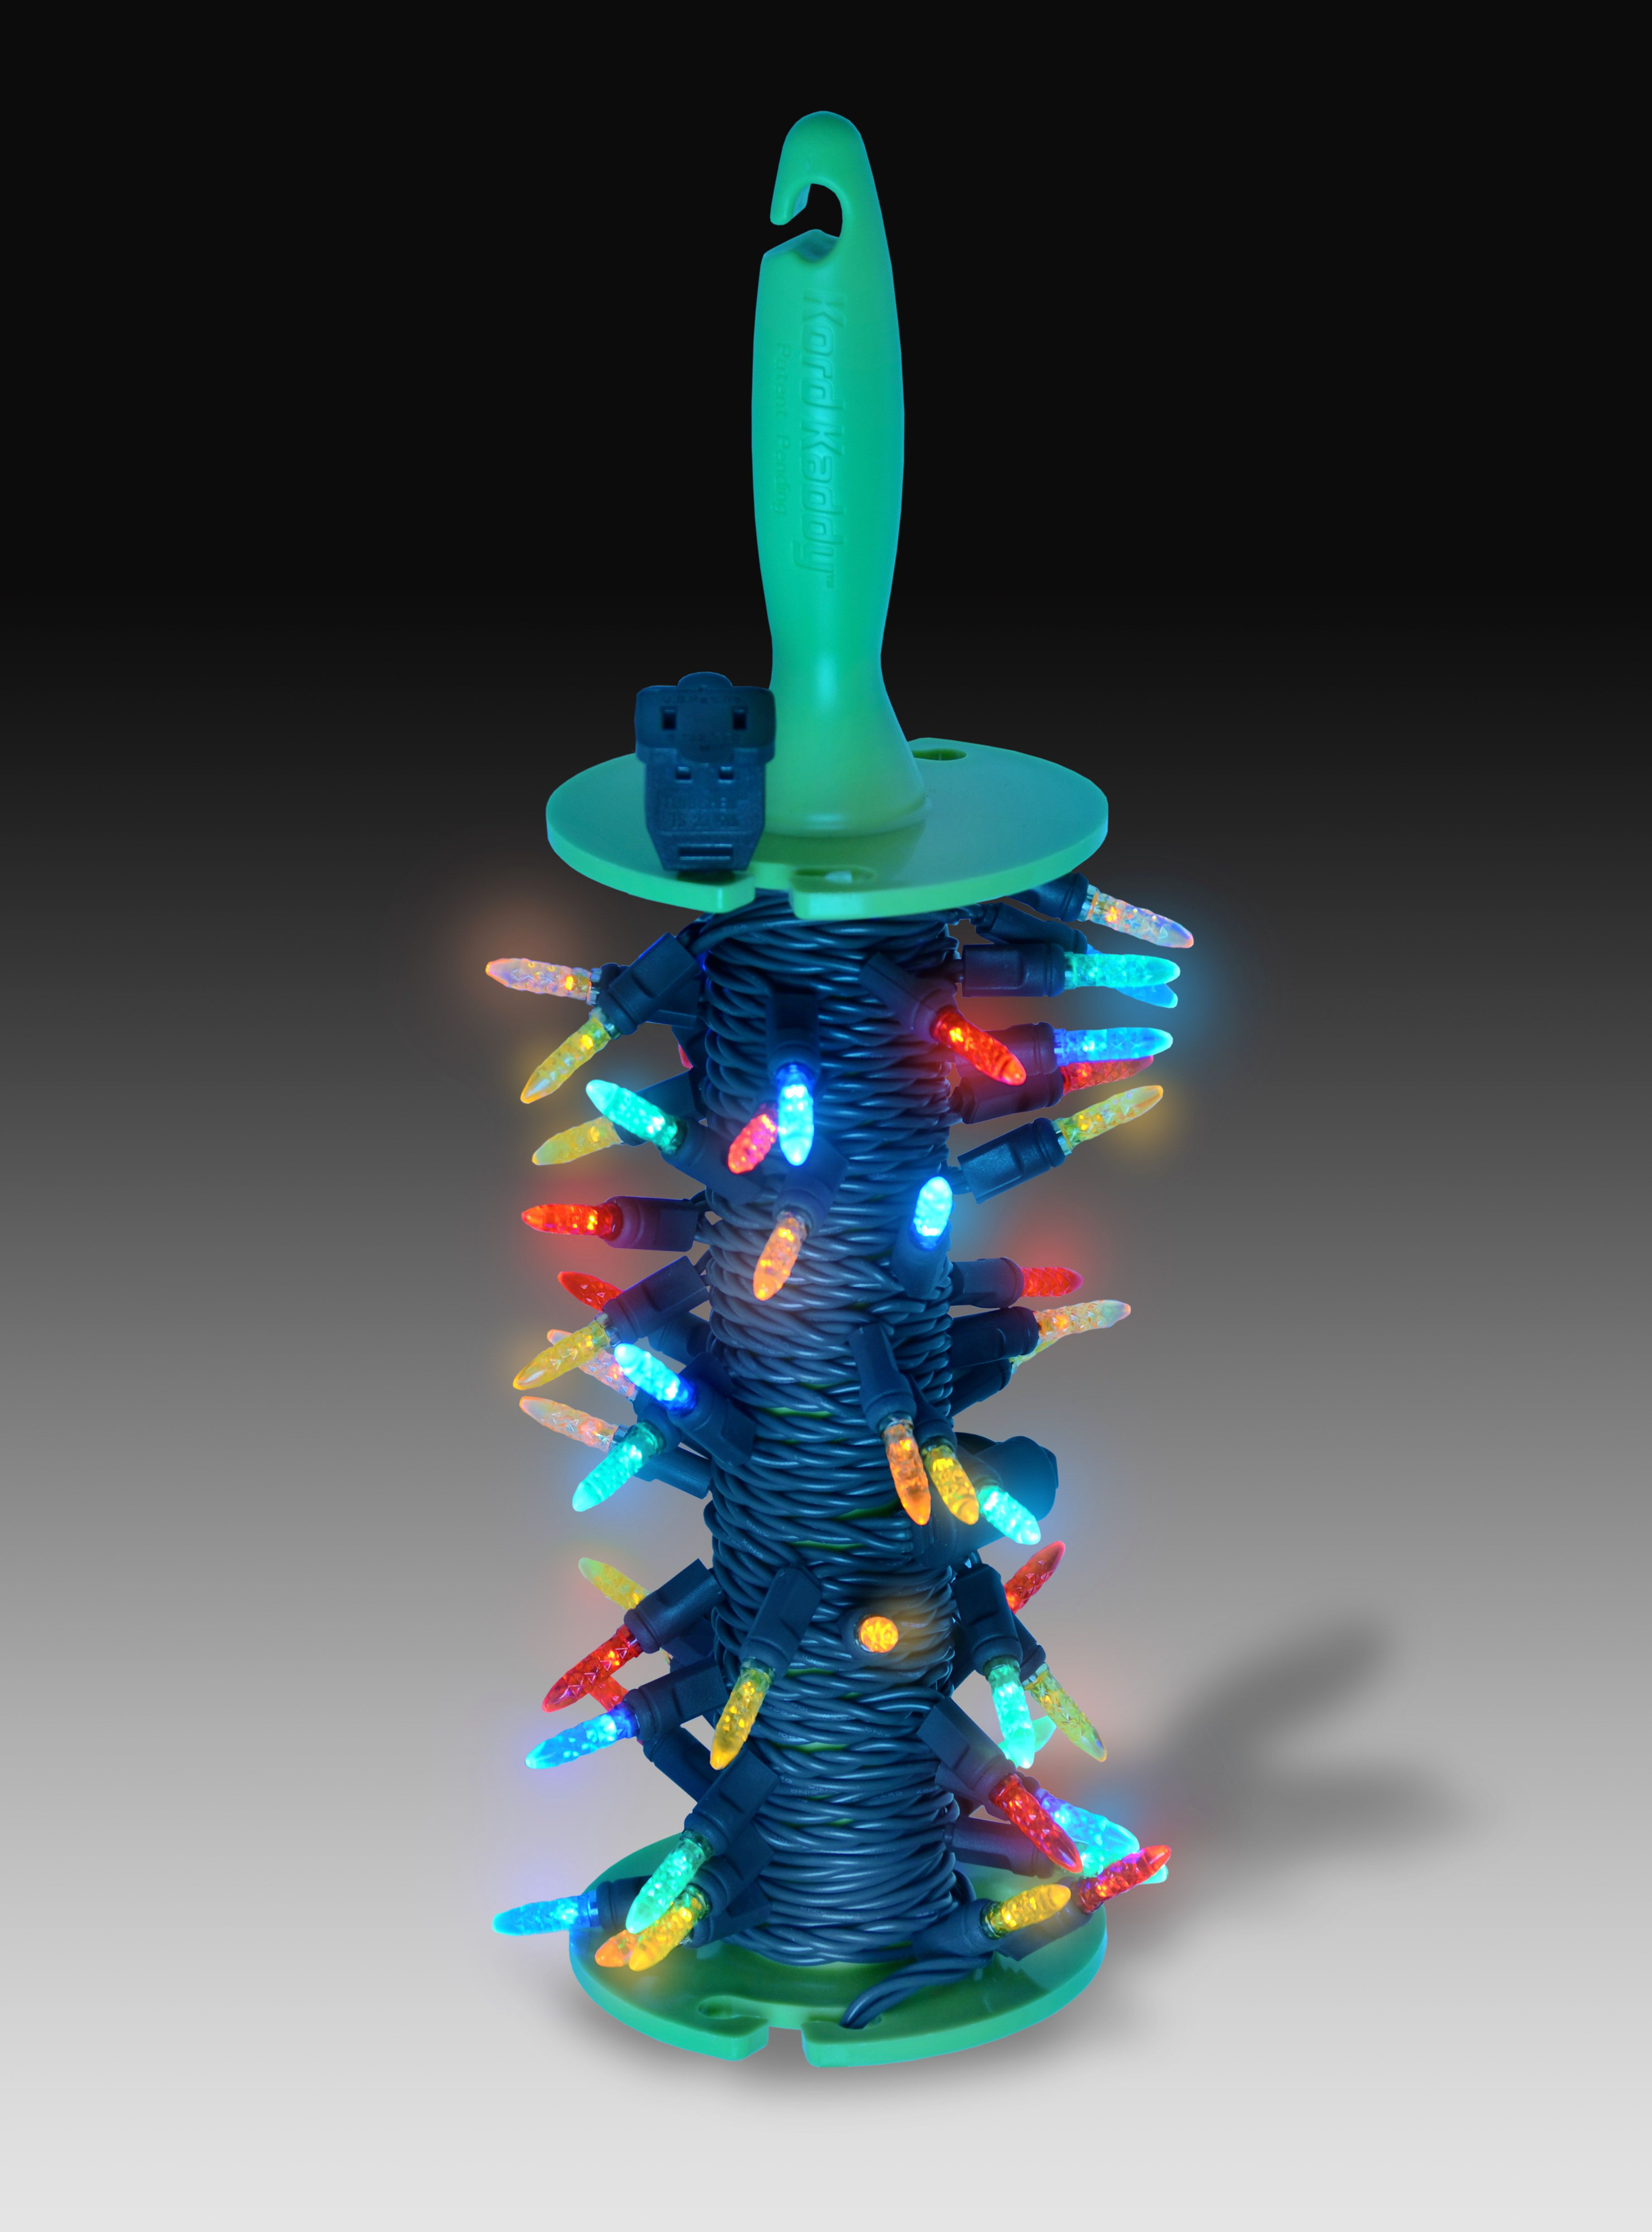 Don T Want To Deal With The Hassle Of Tangled Christmas Lights Save Yourself The Trouble Kord Christmas Light Storage Christmas Storage Holiday Organization